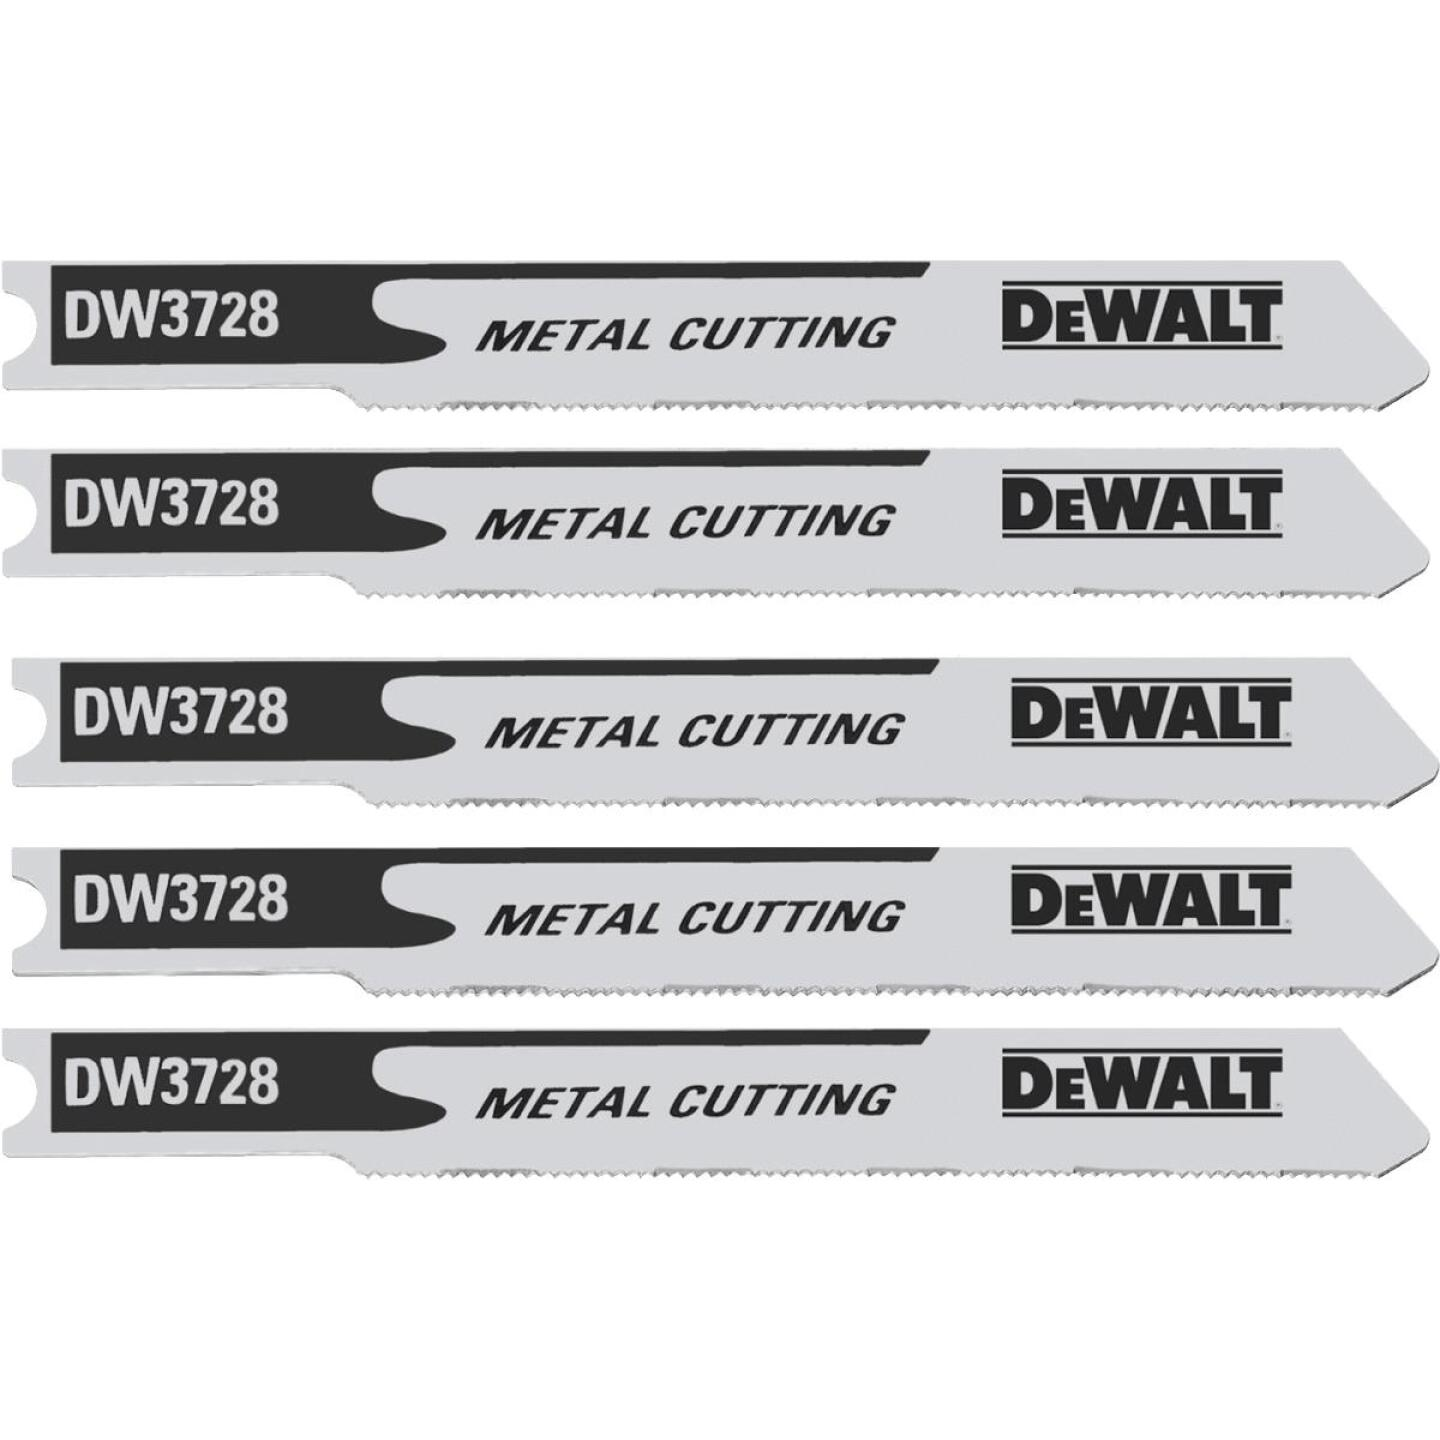 DeWalt U-Shank 3 In. x 36 TPI High Carbon Steel Jig Saw Blade, Metal (5-Pack) Image 1